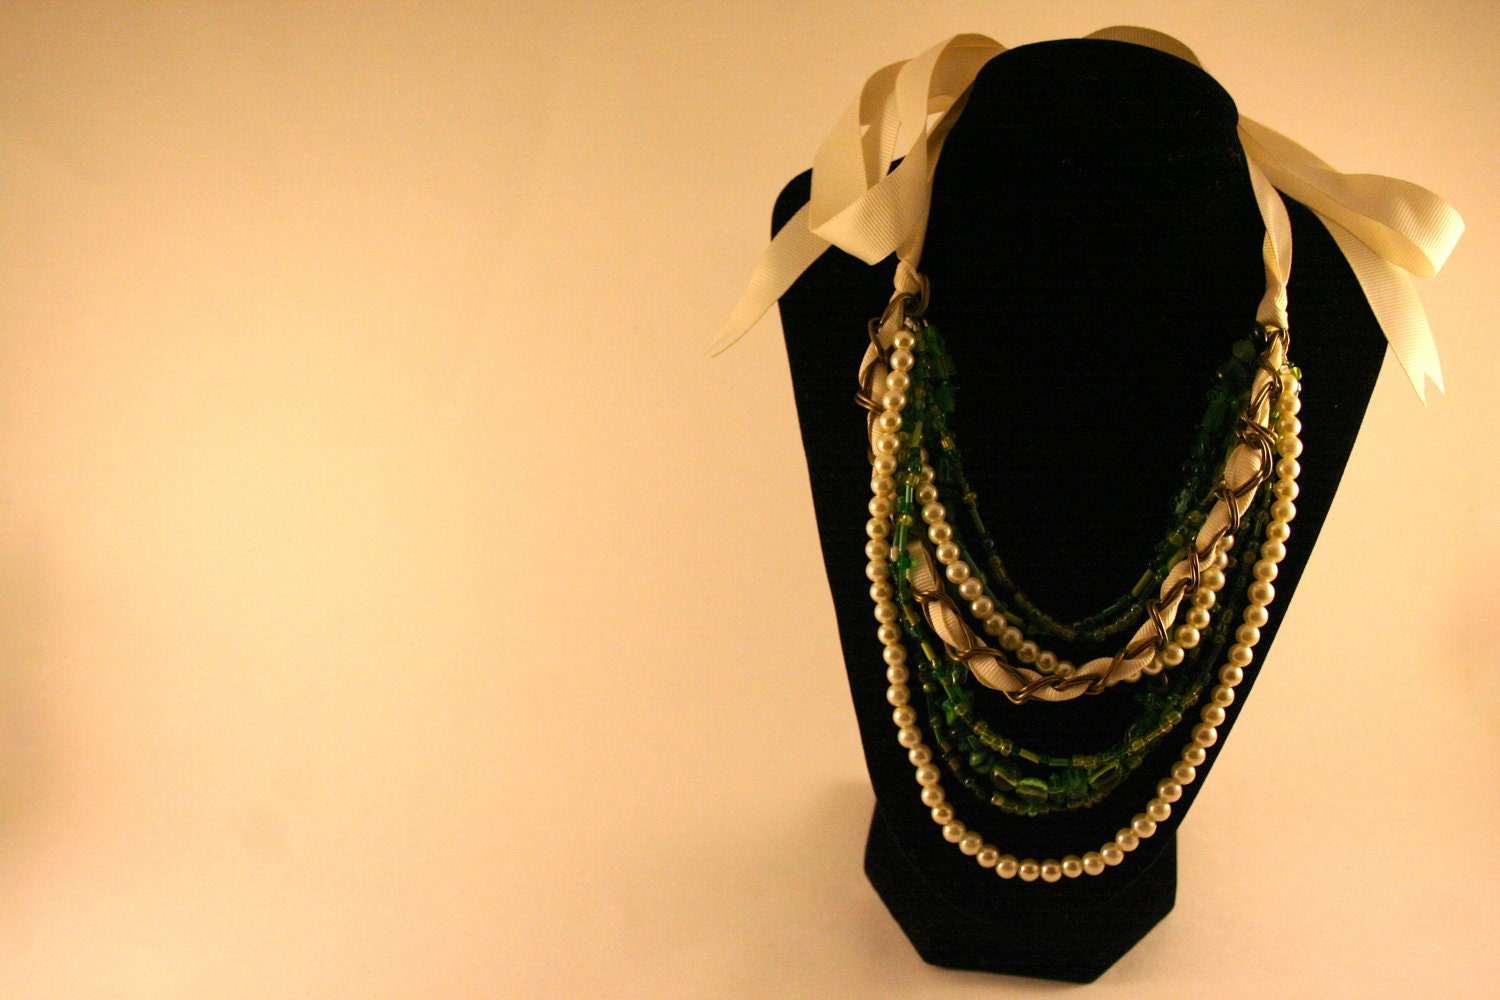 Green and Pearl Ribbon Tied Necklace - Boden Inspired - ABerryCrafts